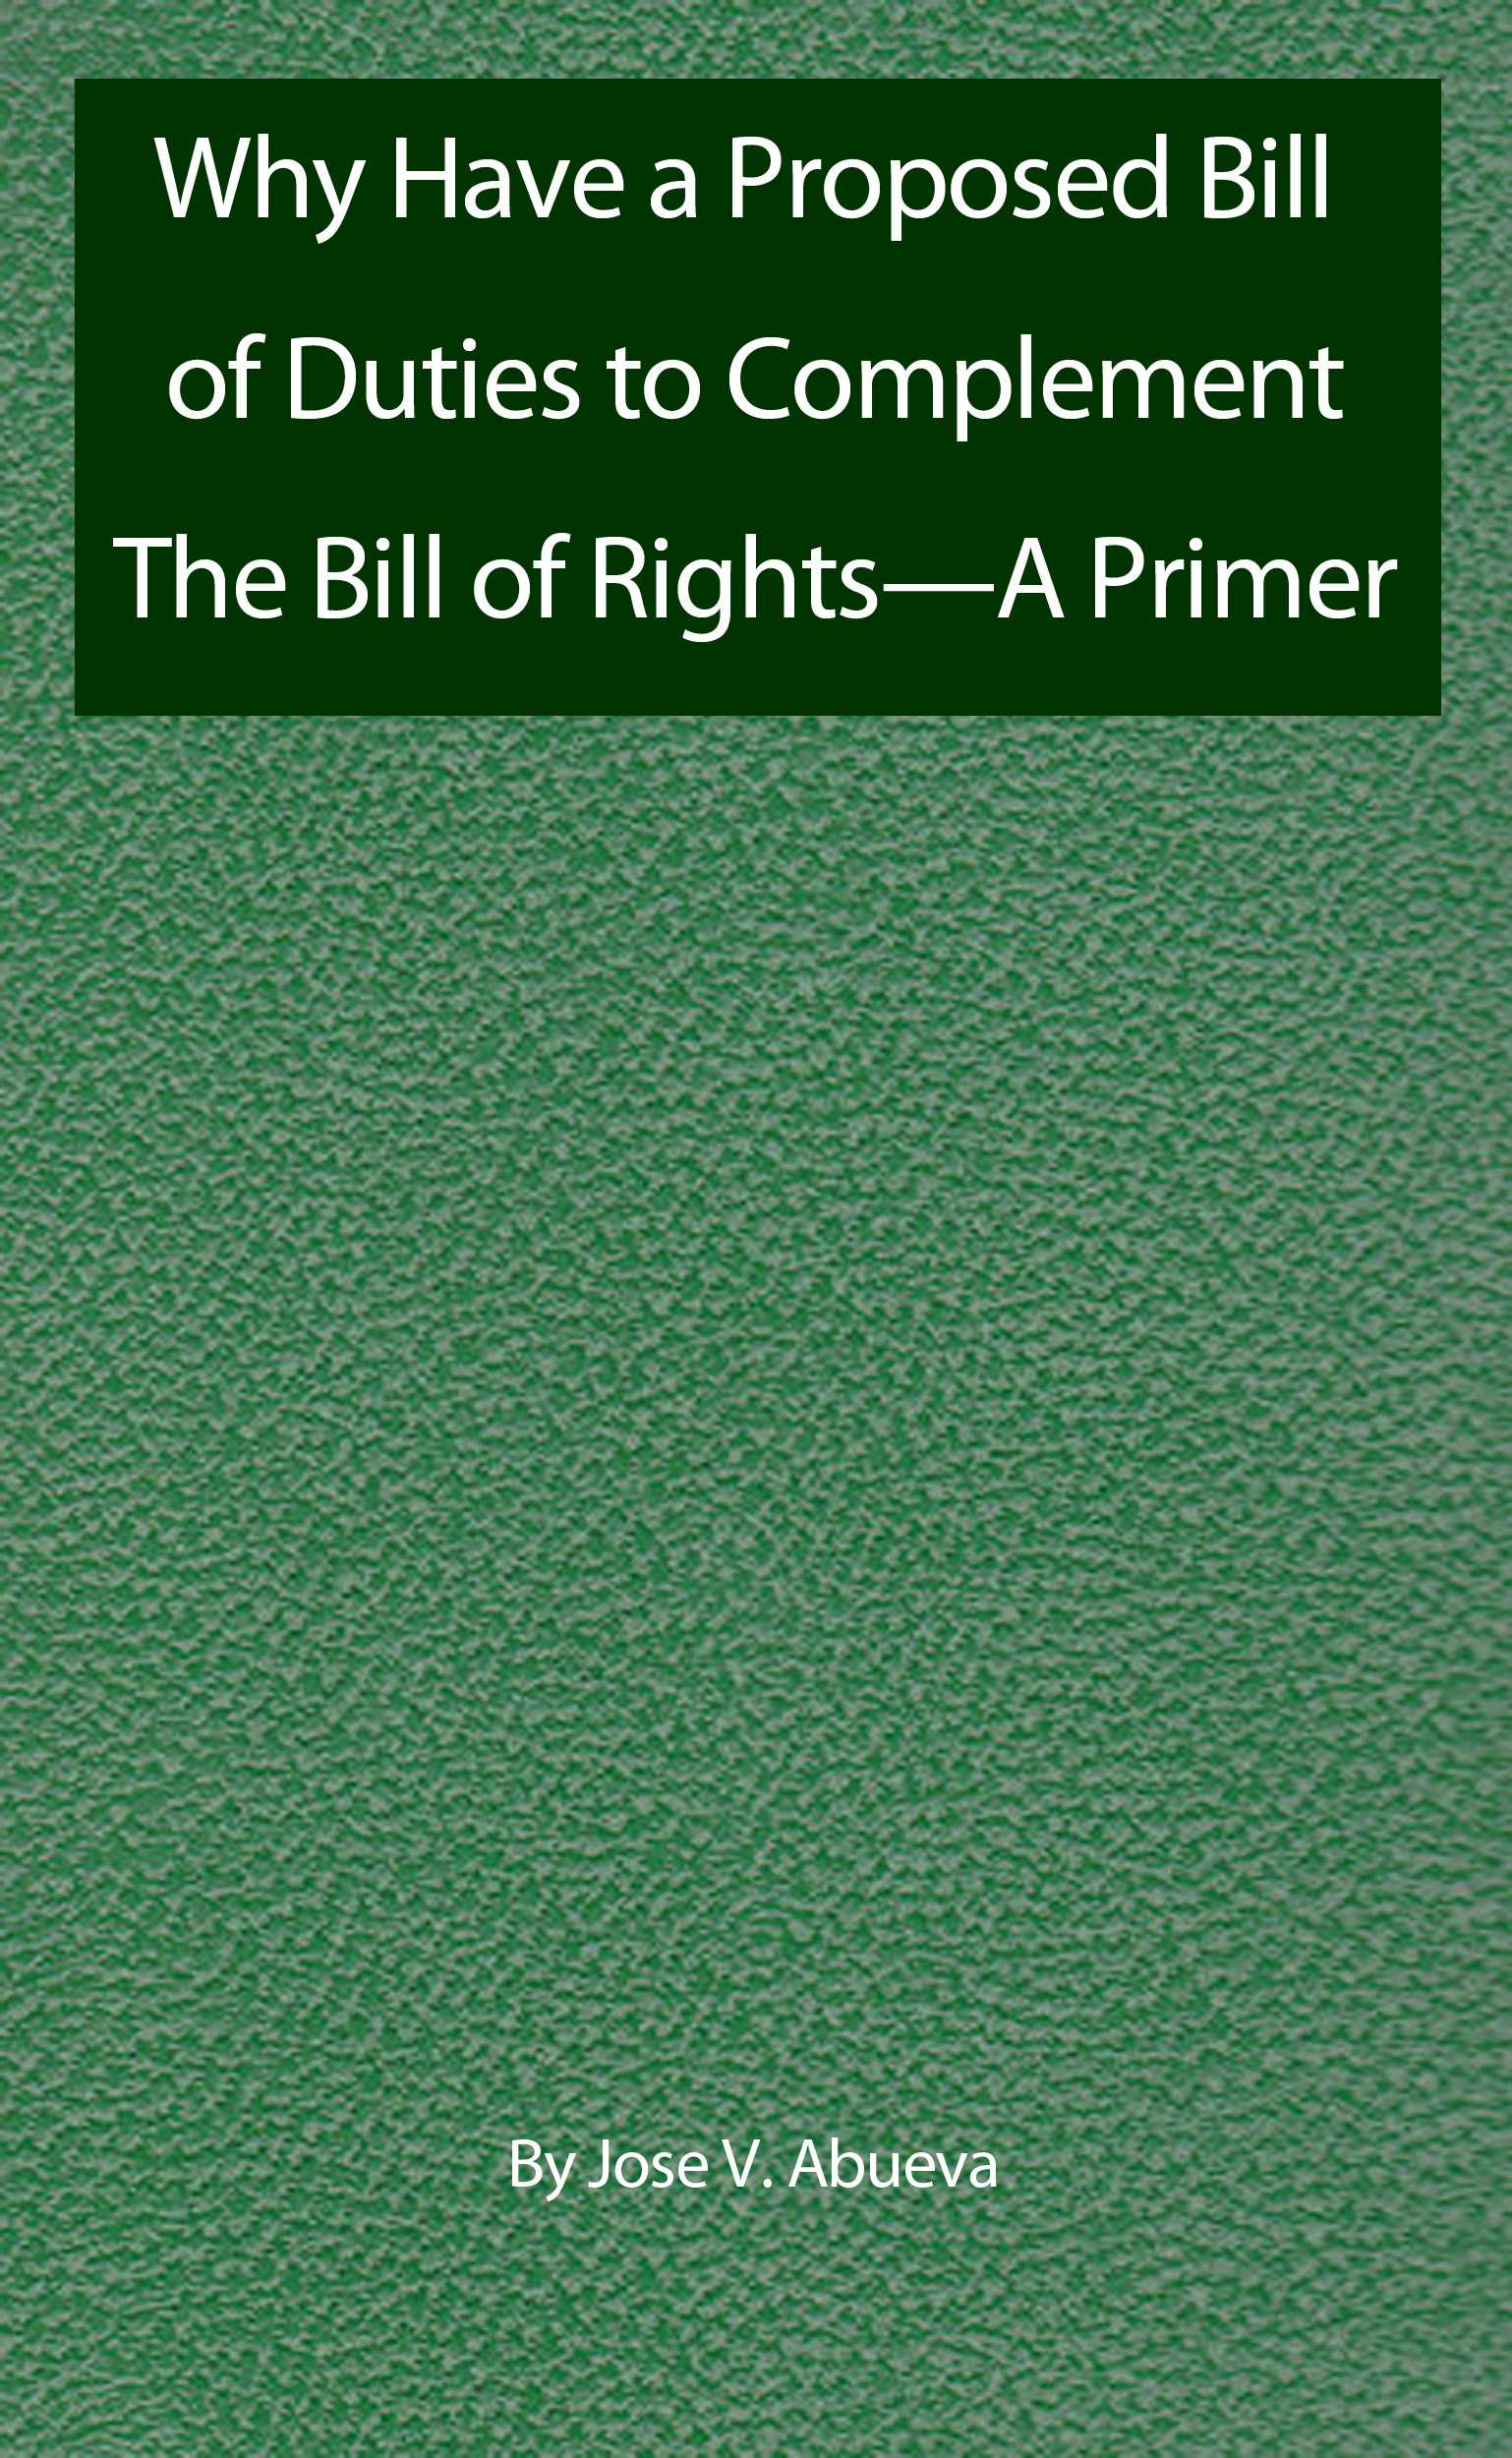 Why Have a Proposed Bill of Duties to Complement The Bill of Rights—A Primer